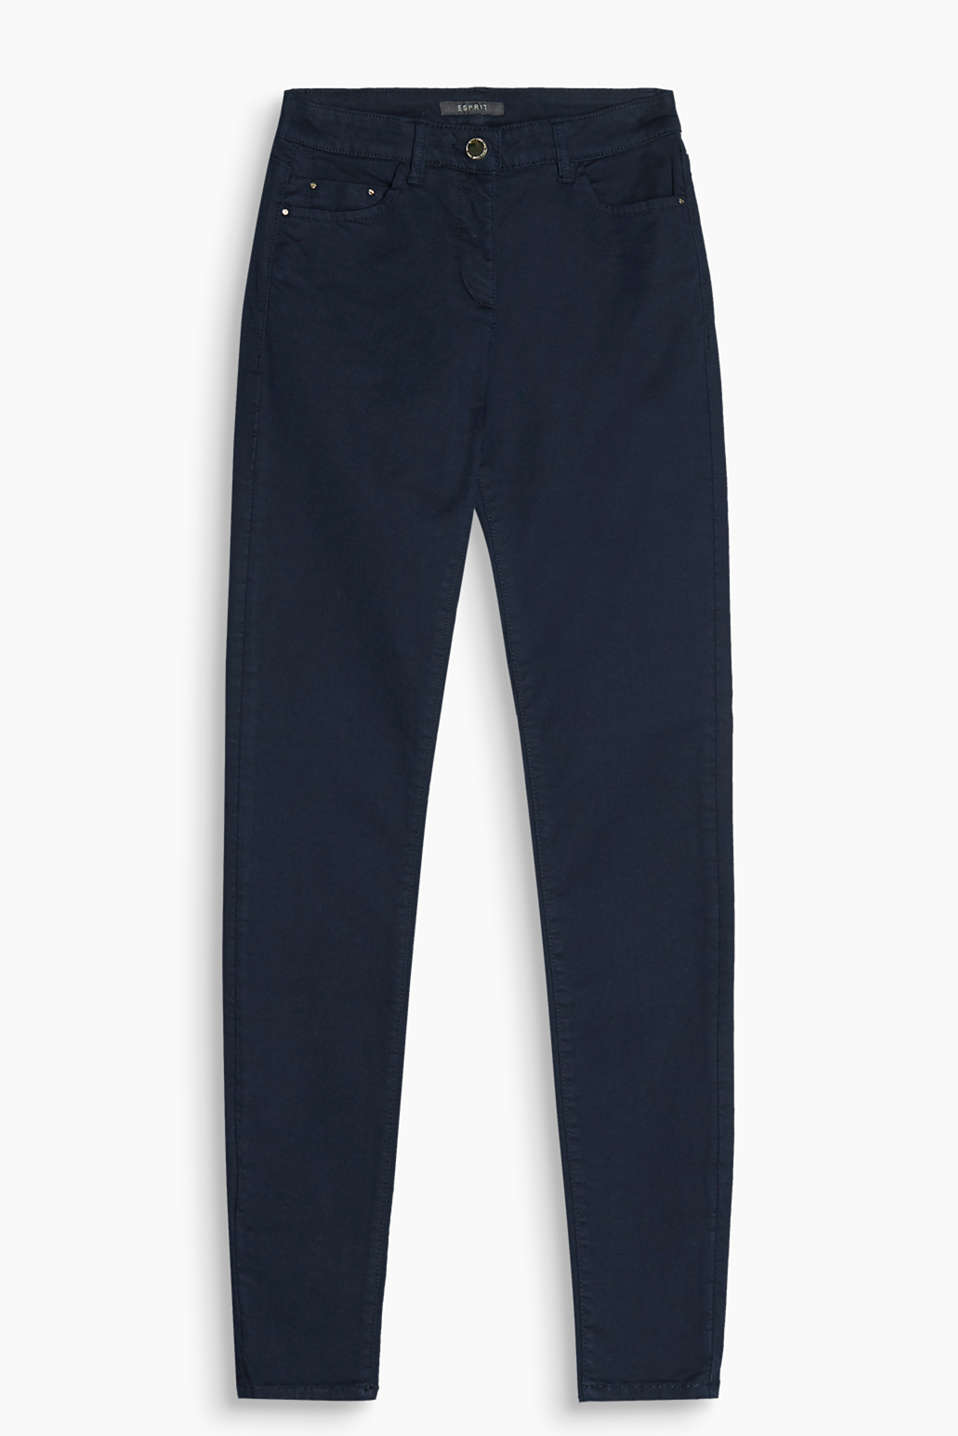 Figure-shaping 4-way stretch trousers with fashionable pockets